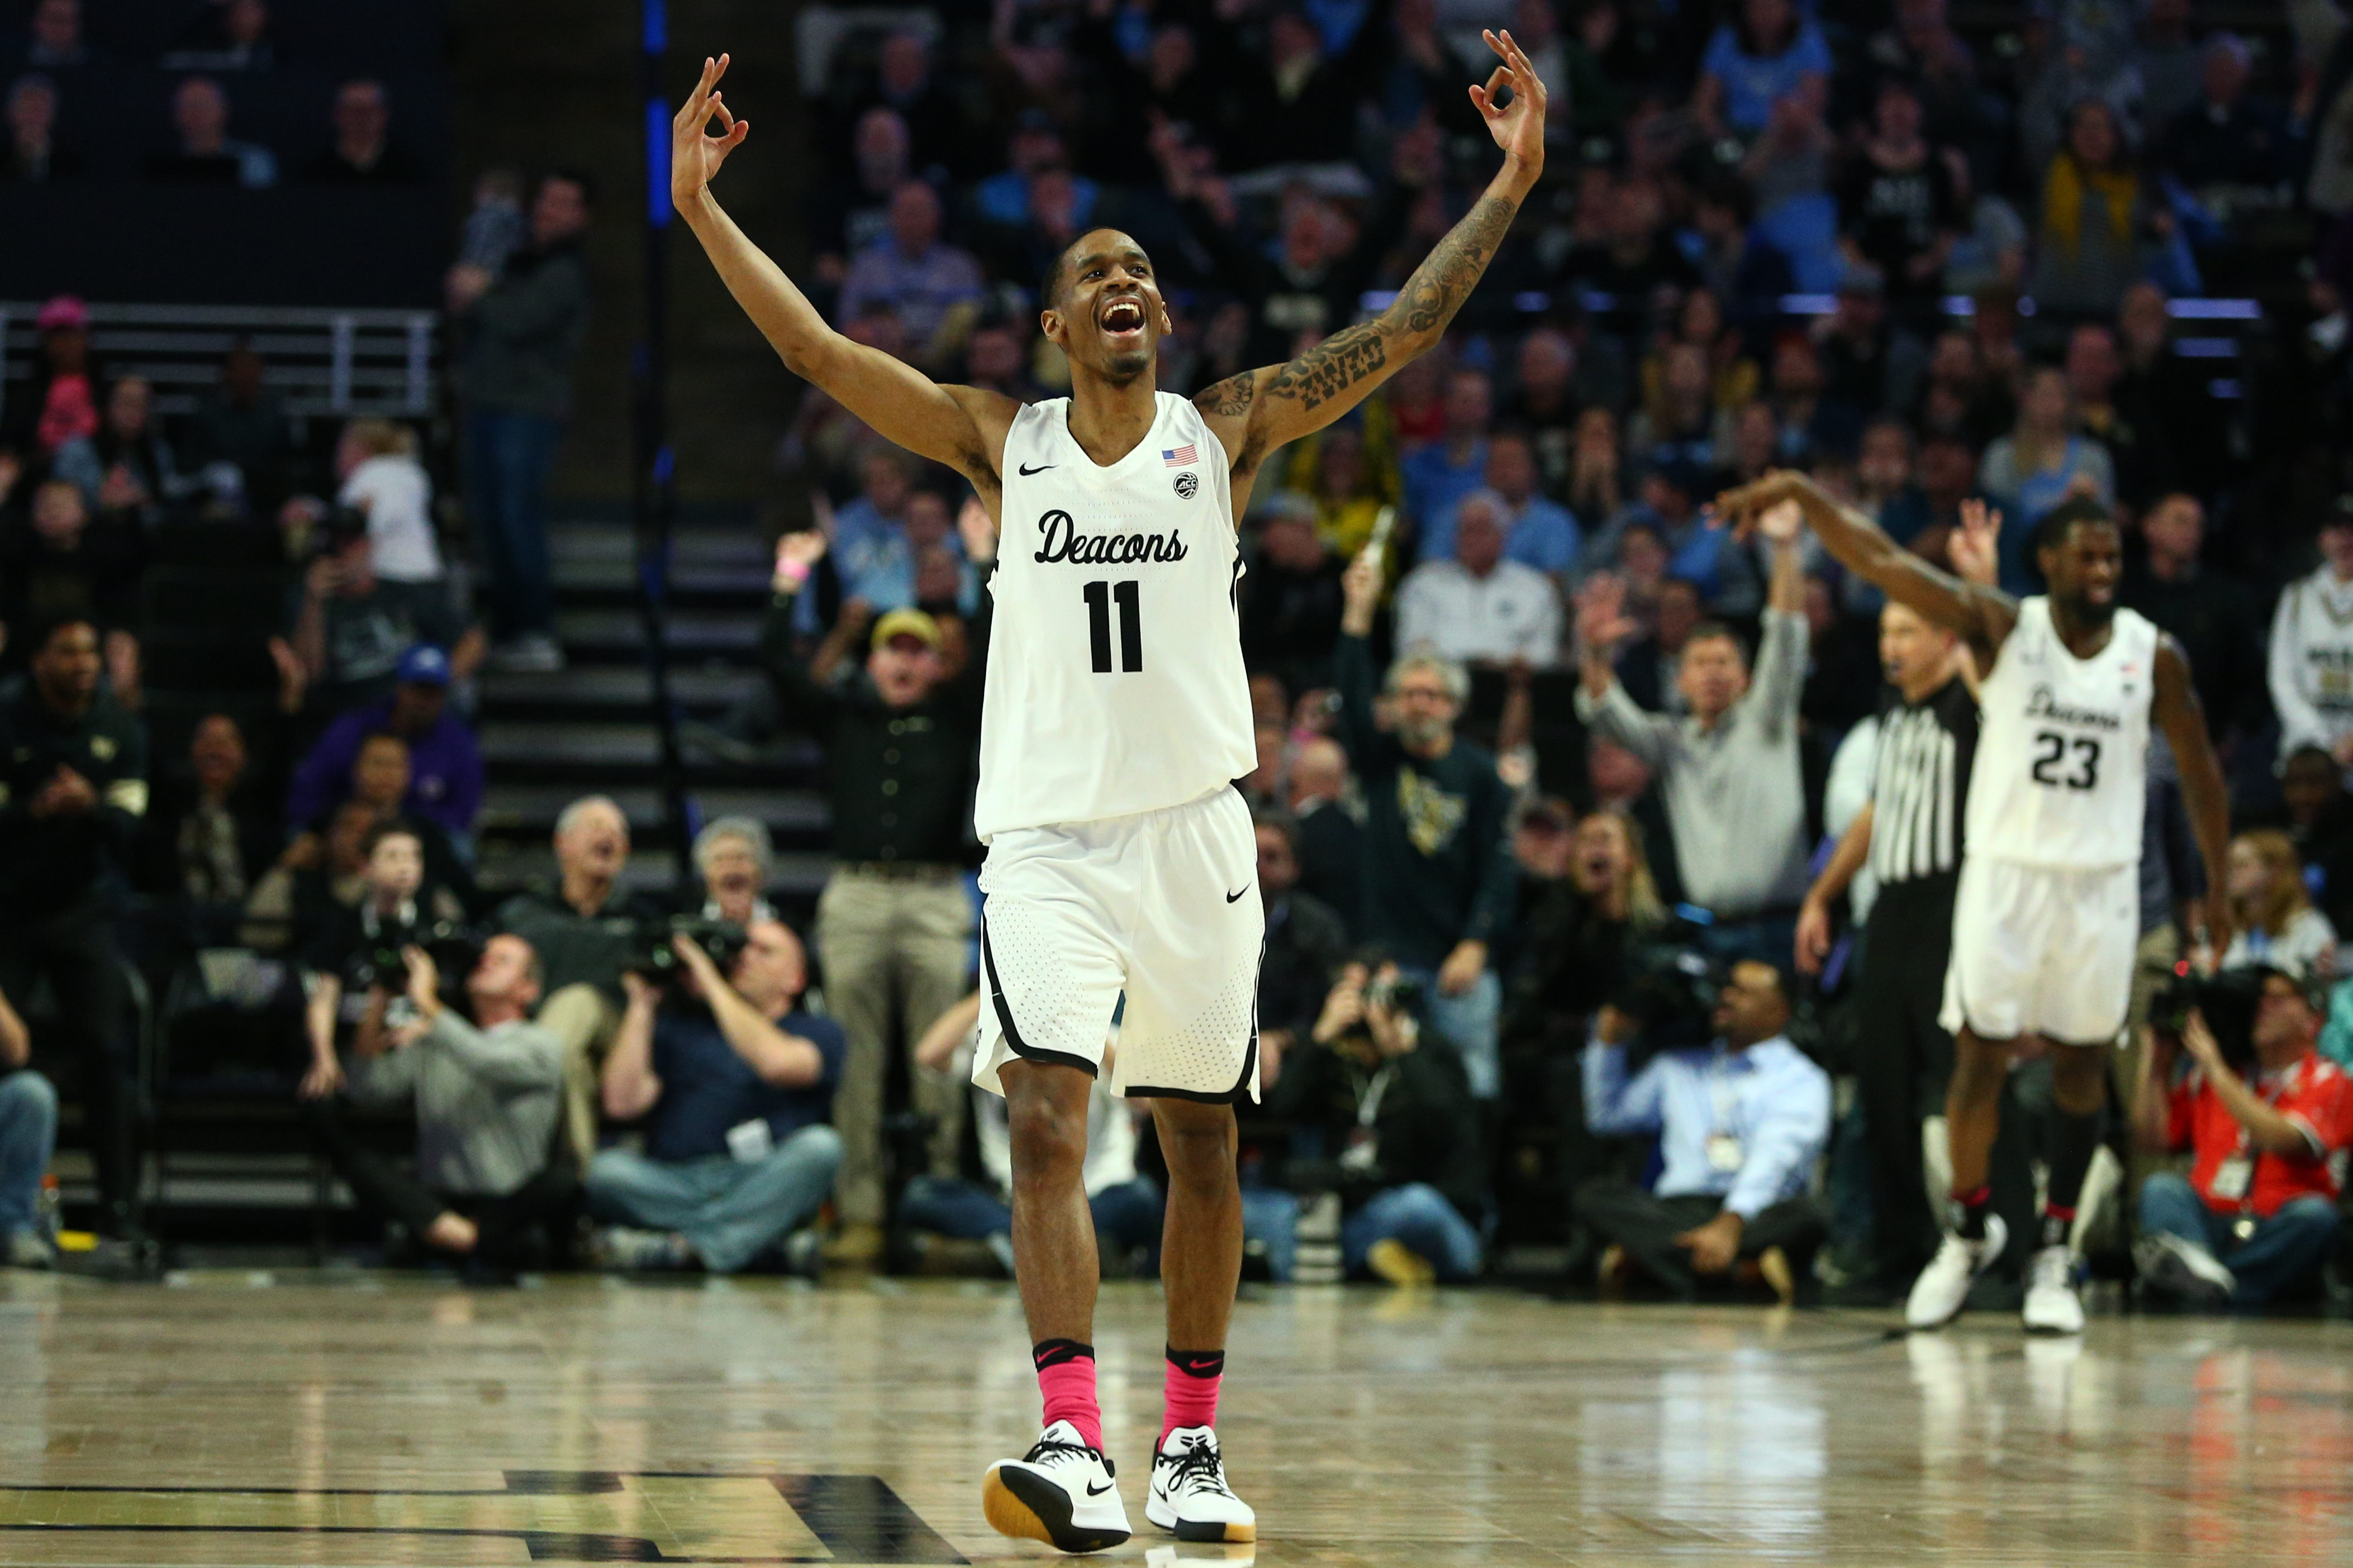 Wake Forest Demon Deacons guard Torry Johnson celebrates after a three point basket during the second half against the North Carolina Tar Heels at Lawrence Joel Veterans Memorial Coliseum.